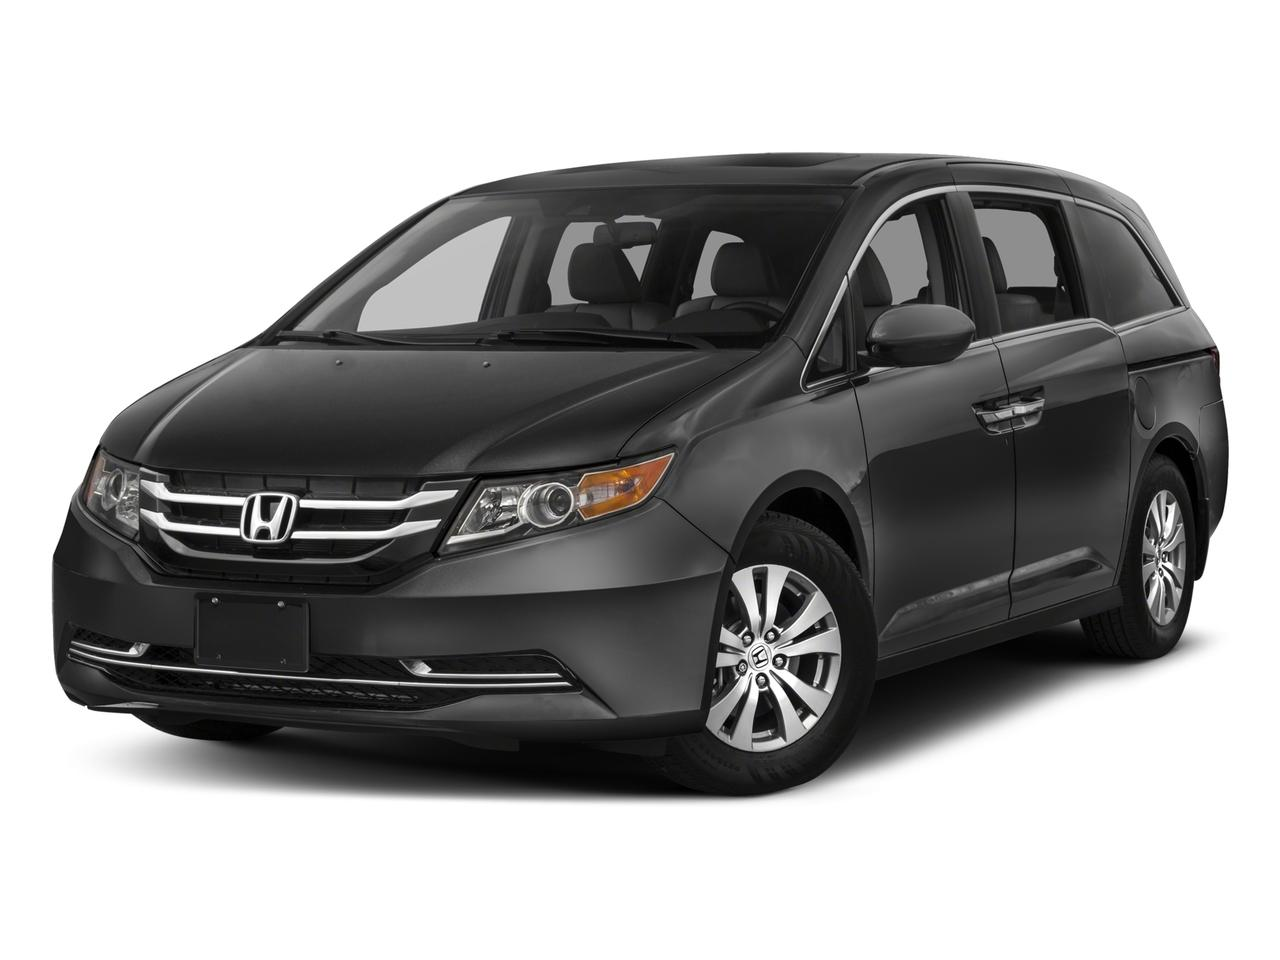 2017 Honda Odyssey Vehicle Photo in Manassas, VA 20109